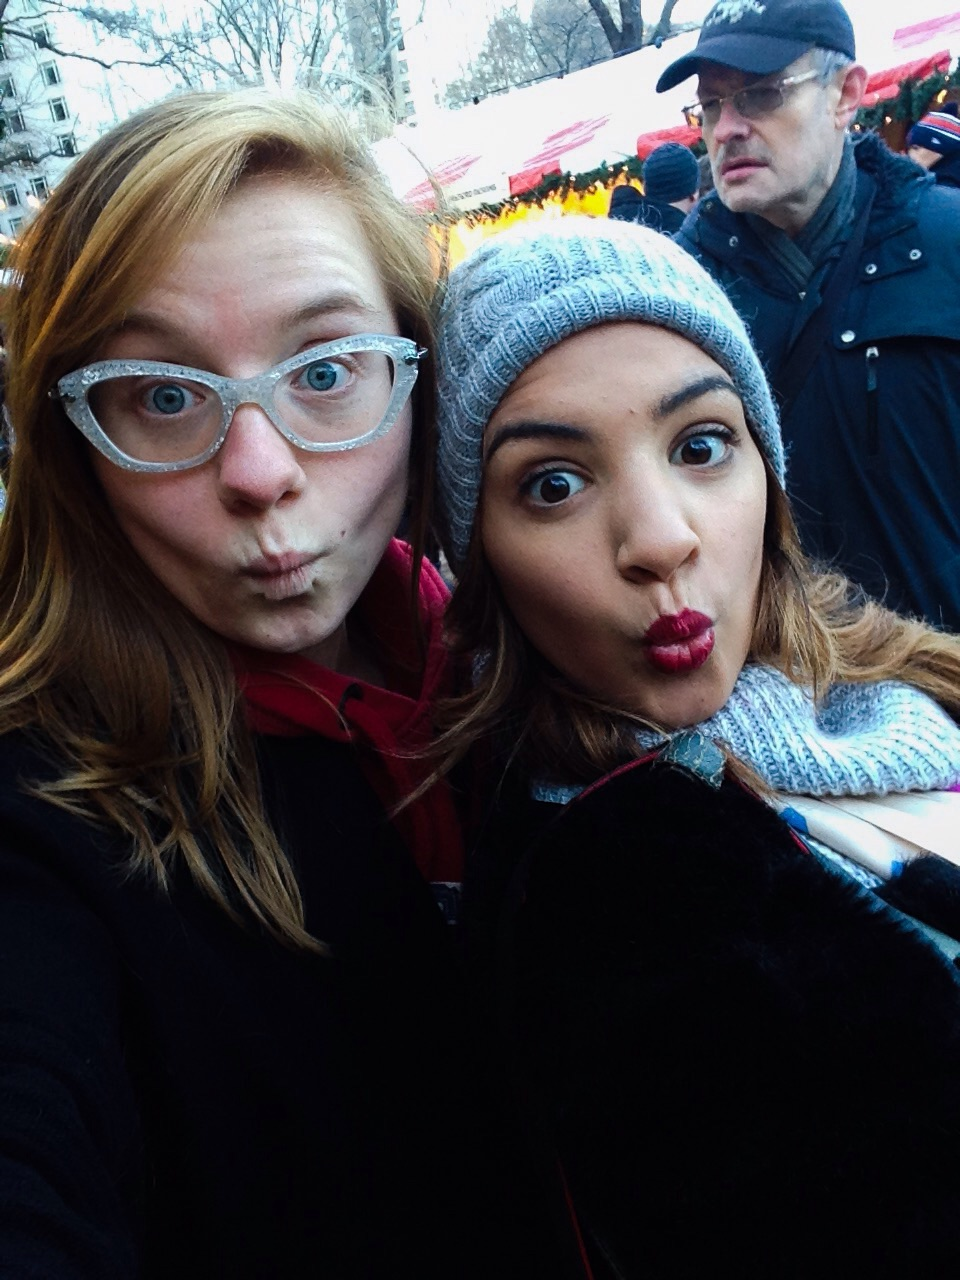 At the Christmas Market, with my friend Svetlana as we search for gifts